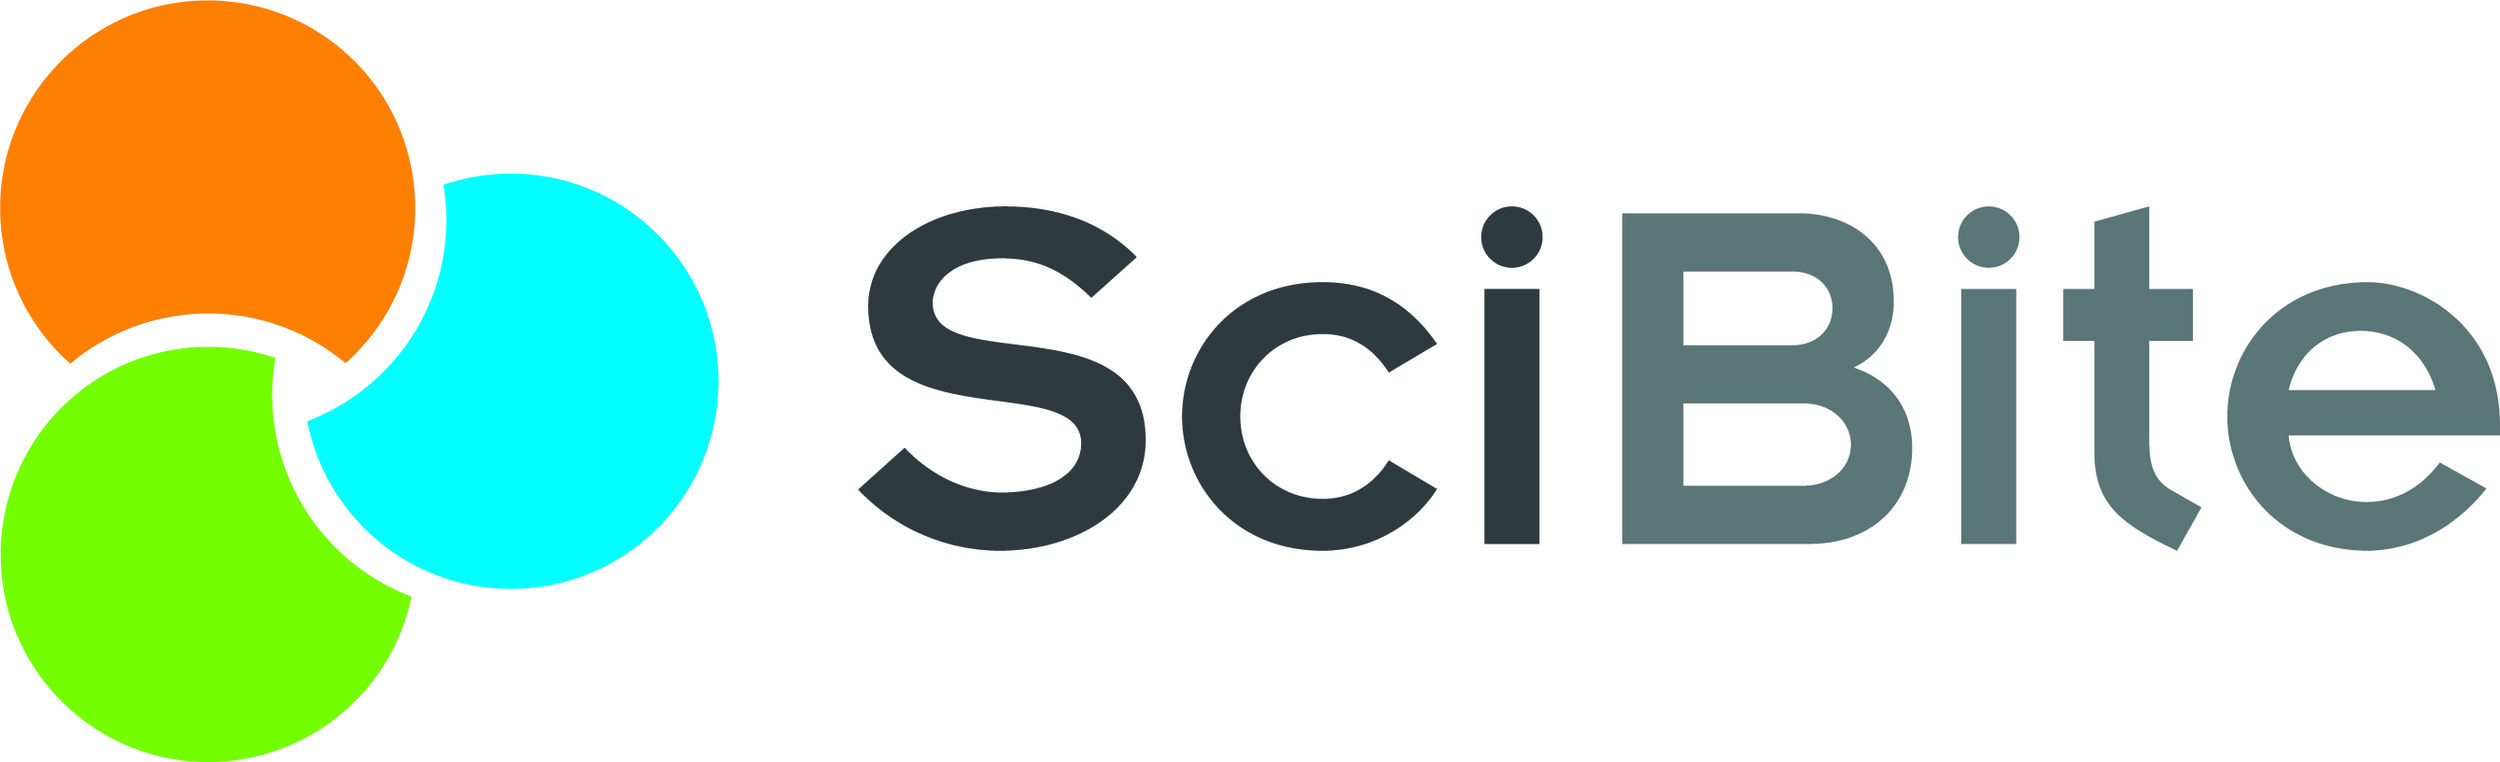 SciBite logo-high res.jpg